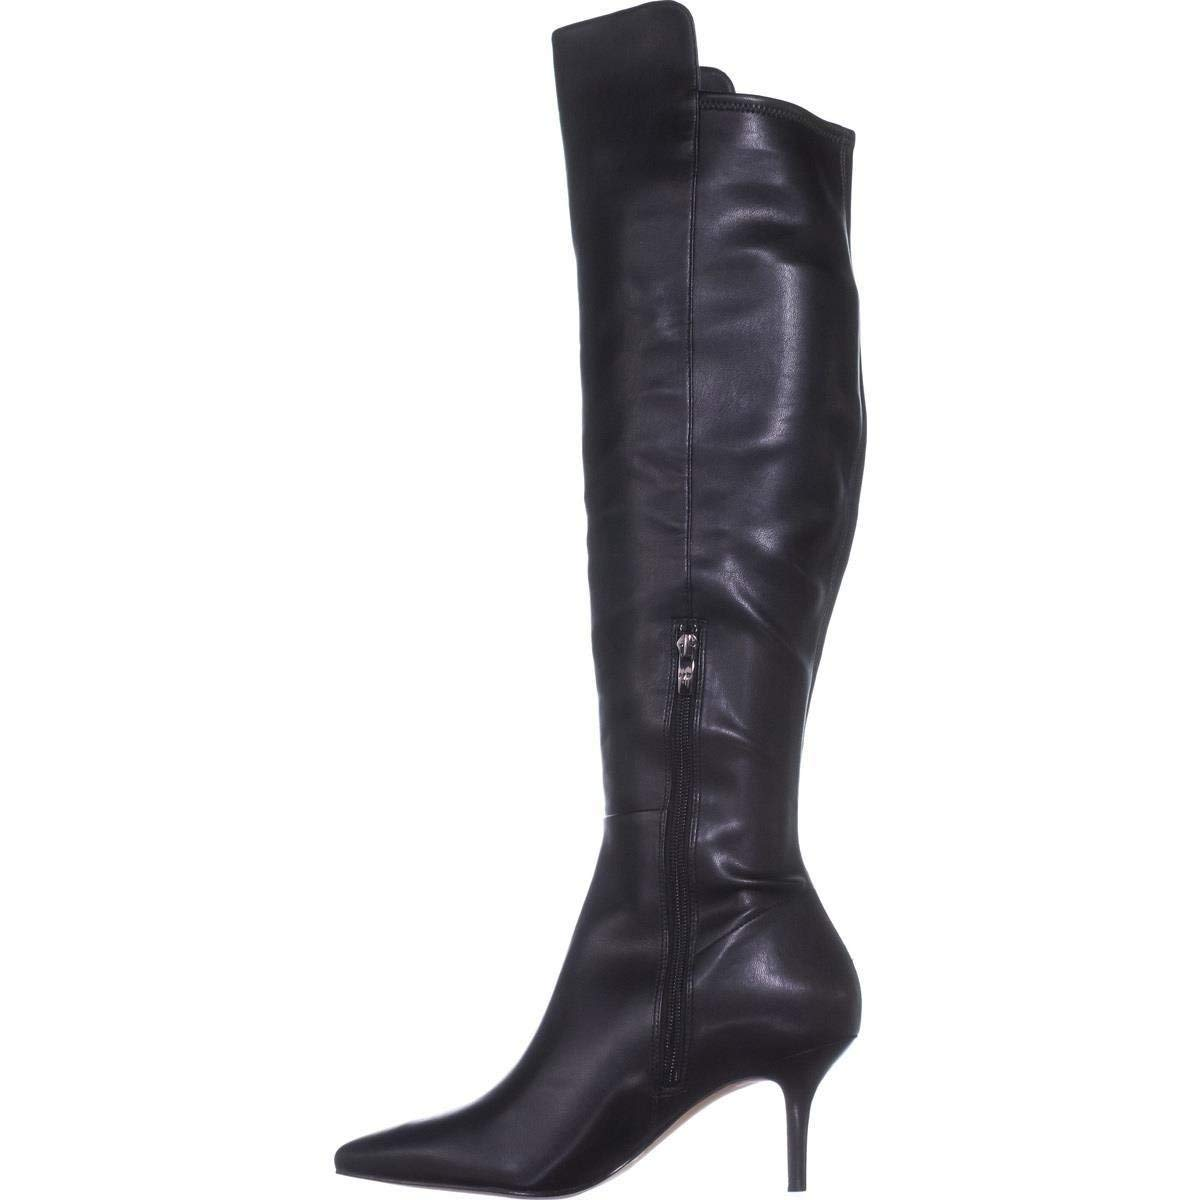 1a14d2dcda Details about Marc Fisher Womens Adana Leather Pointed Toe Over Knee  Fashion Boots